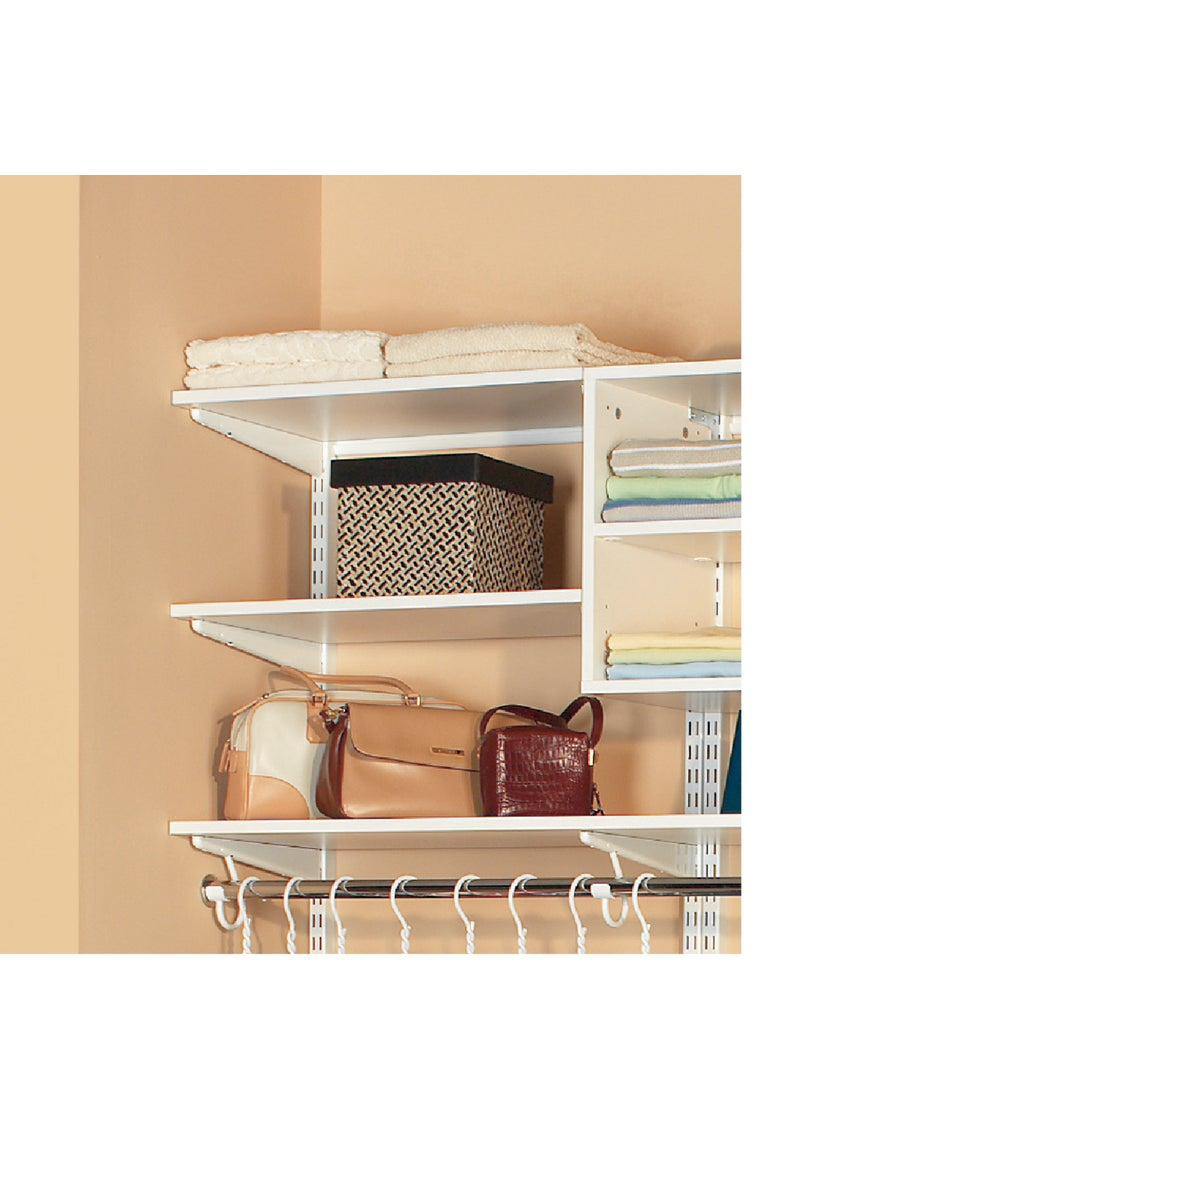 3' WHITE MELAMINE SHELF - 7313143611 by Schulte Corp